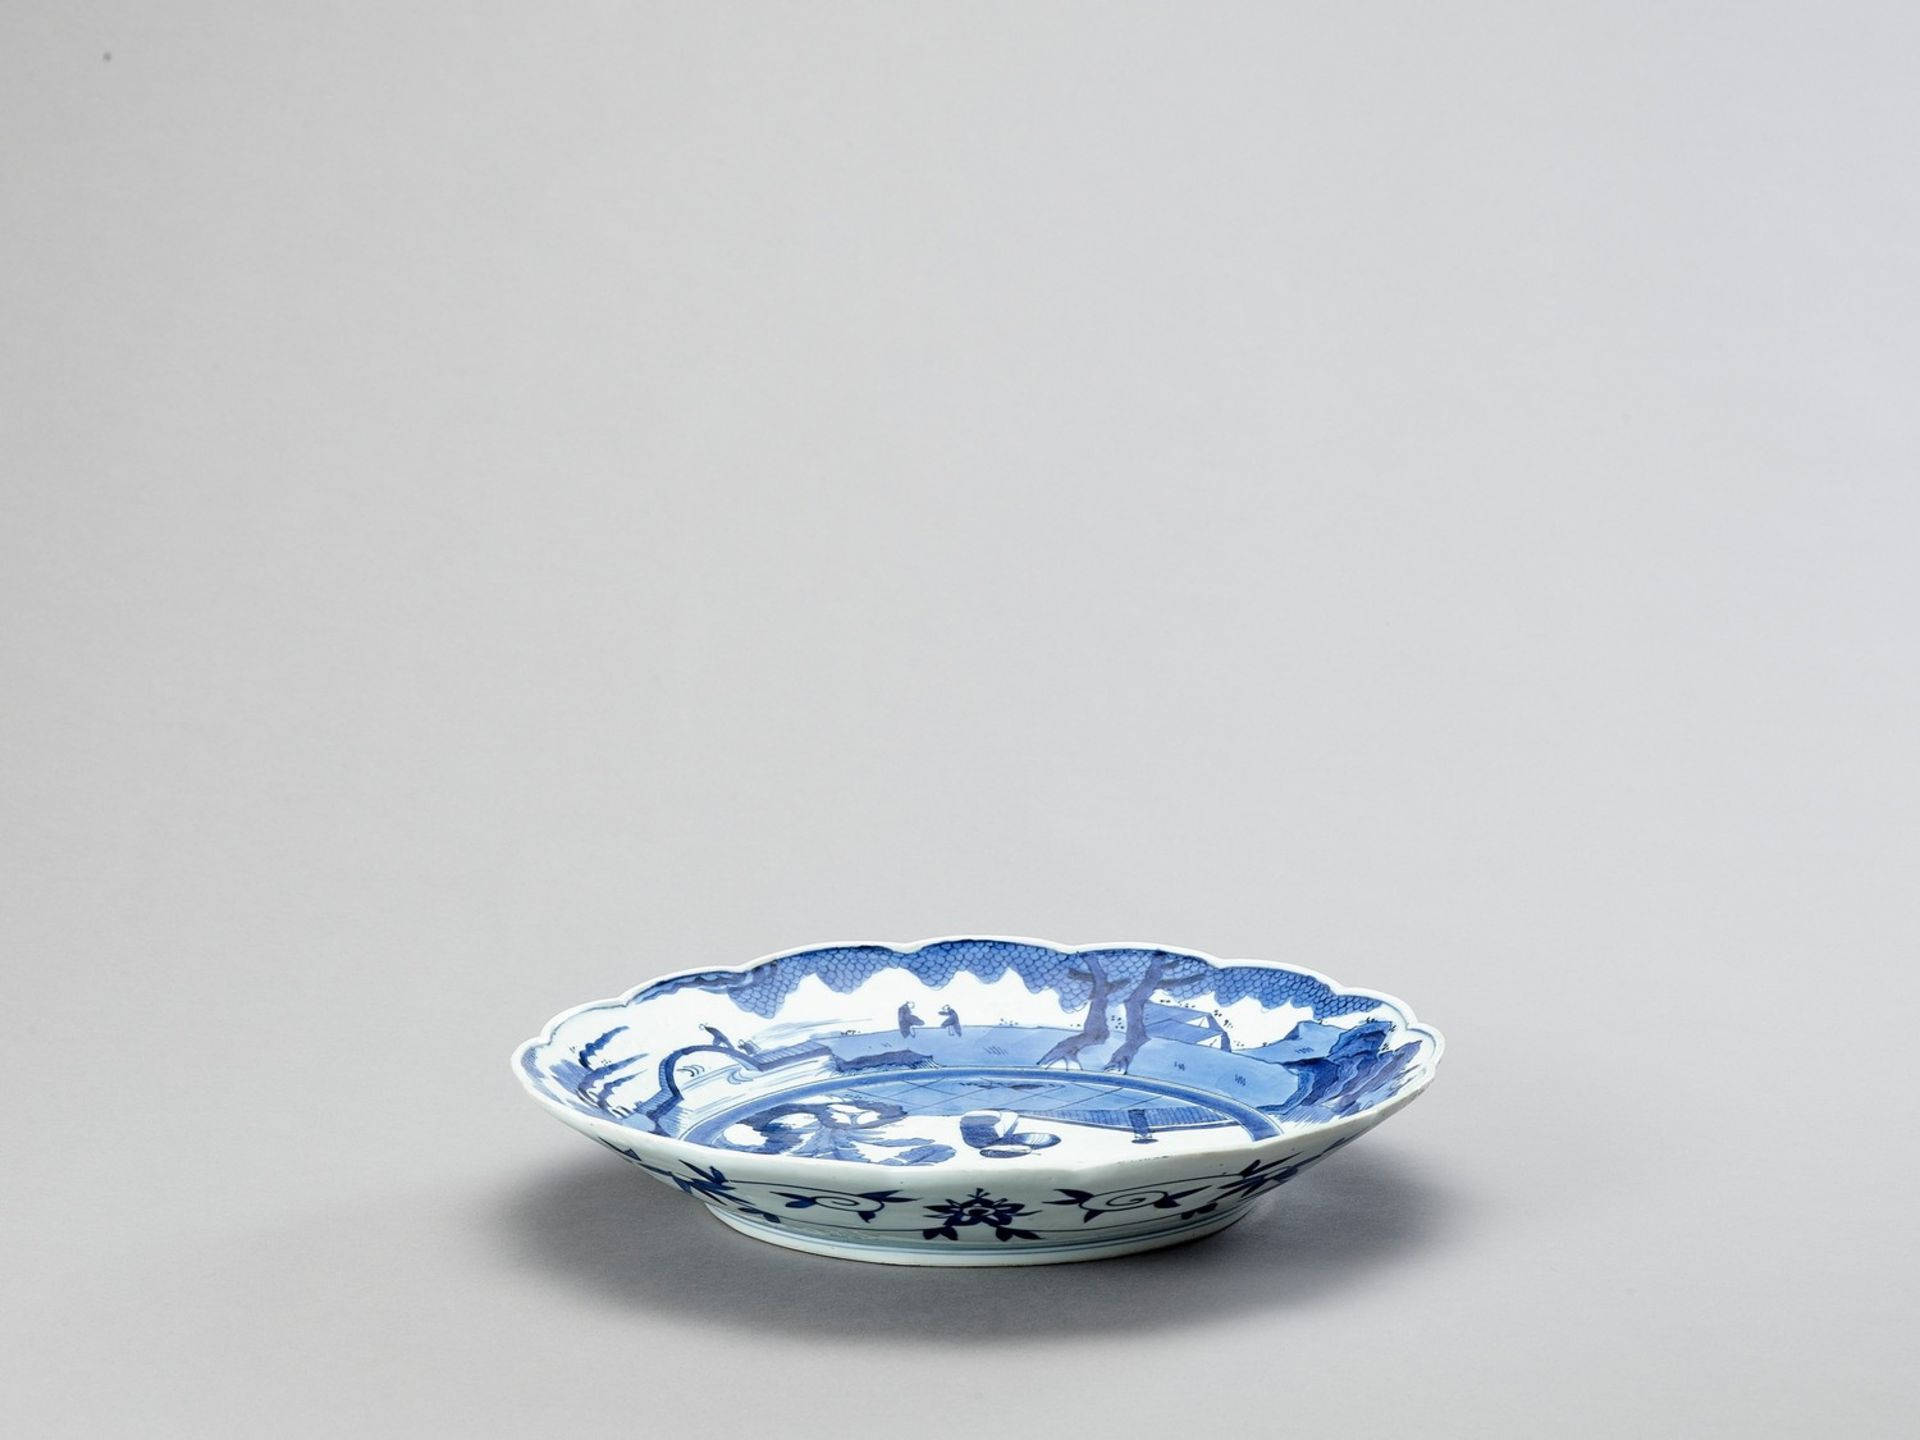 A LOBED ARITA PORCELAIN CHARGER - Image 2 of 4